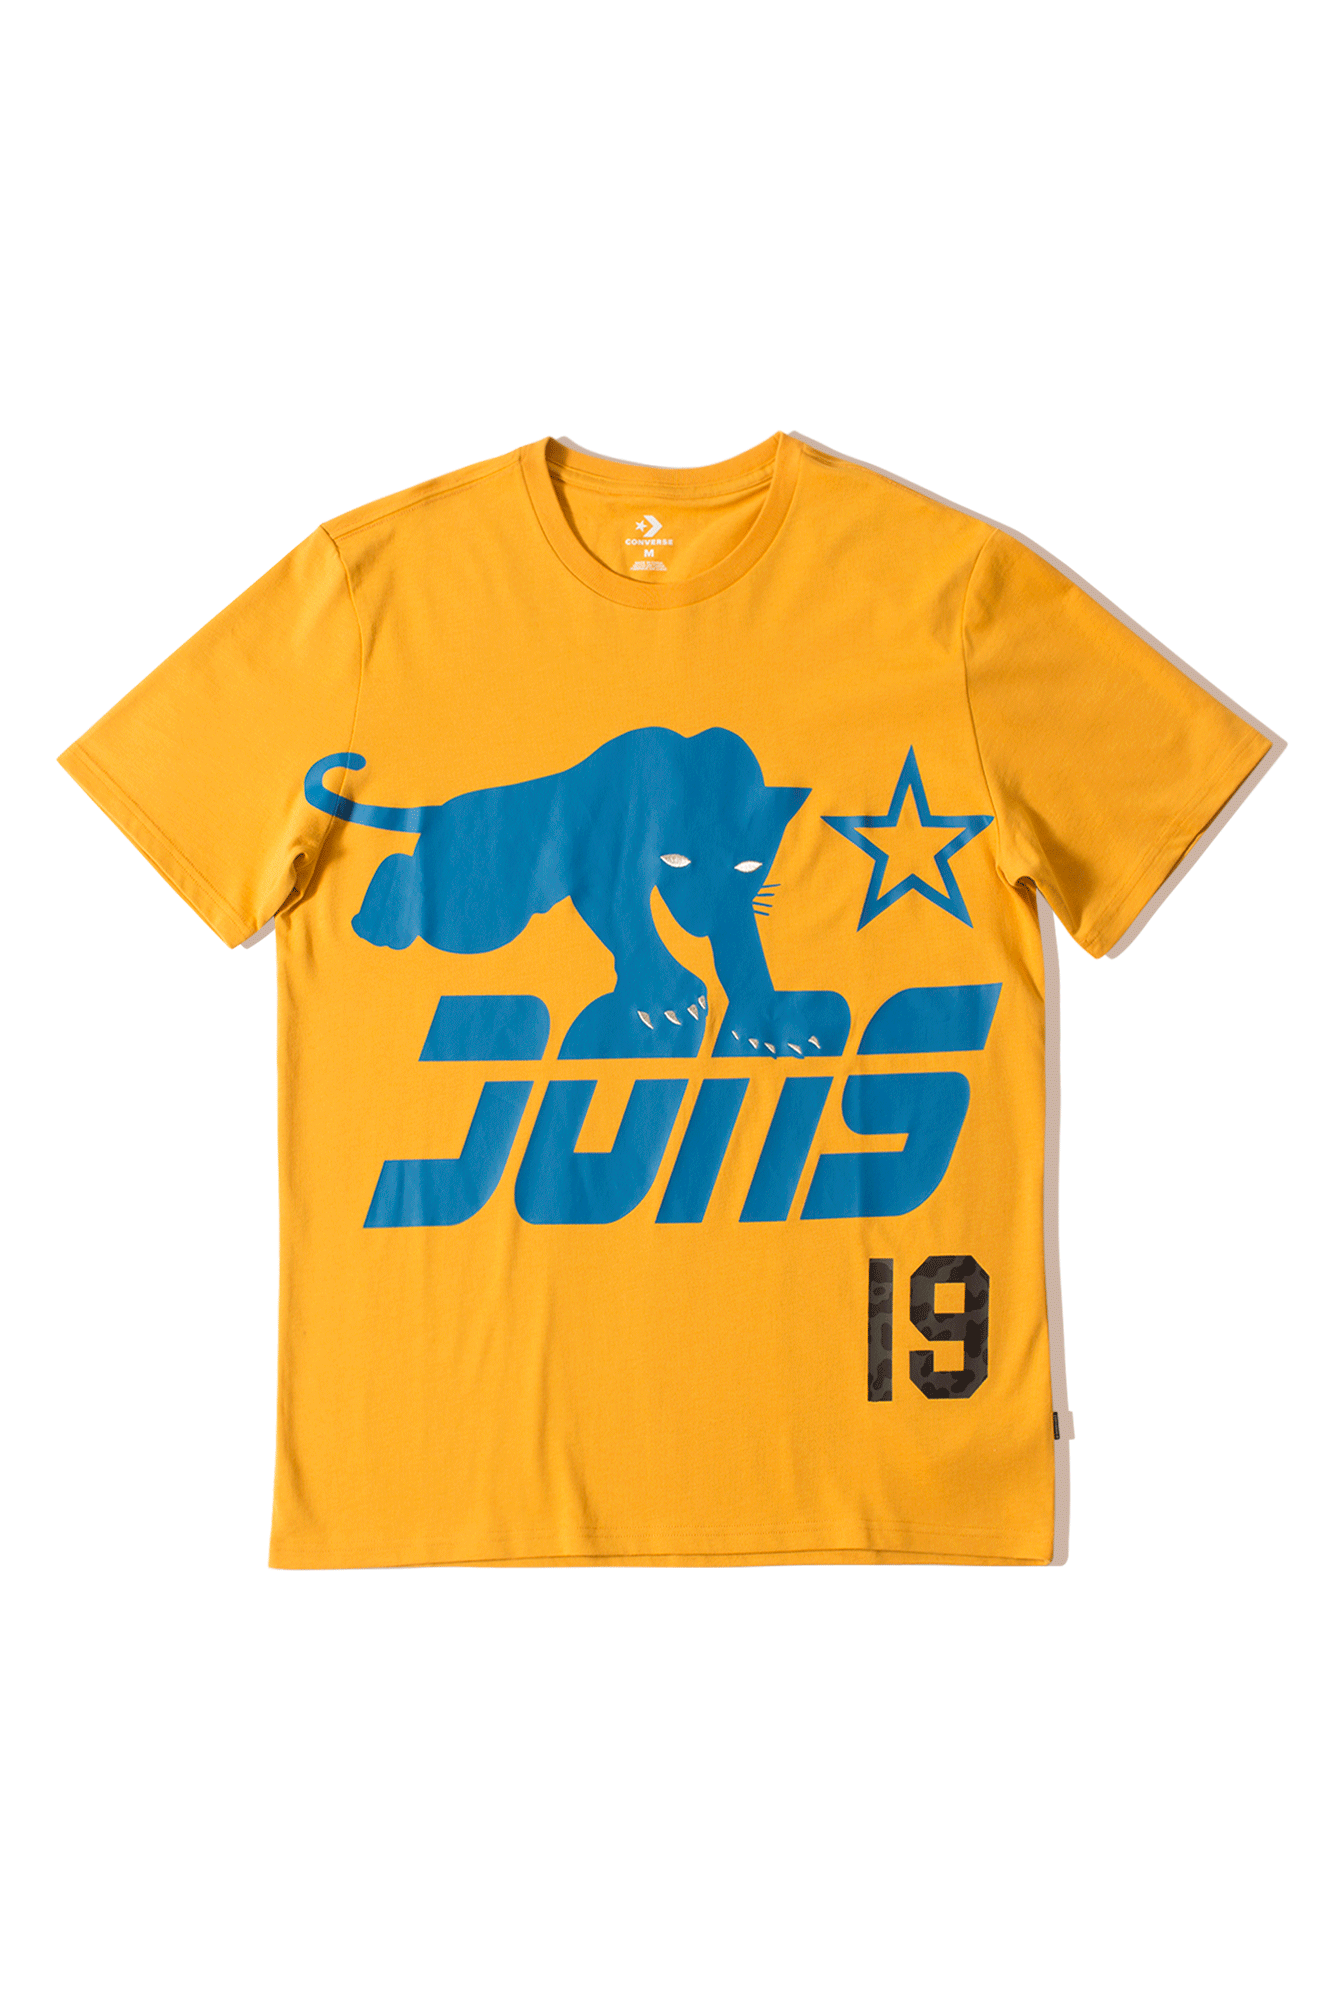 Converse T-Shirts Just Don Graphic Tee Giallo 10016960#YLW#AQUA#M - One Block Down